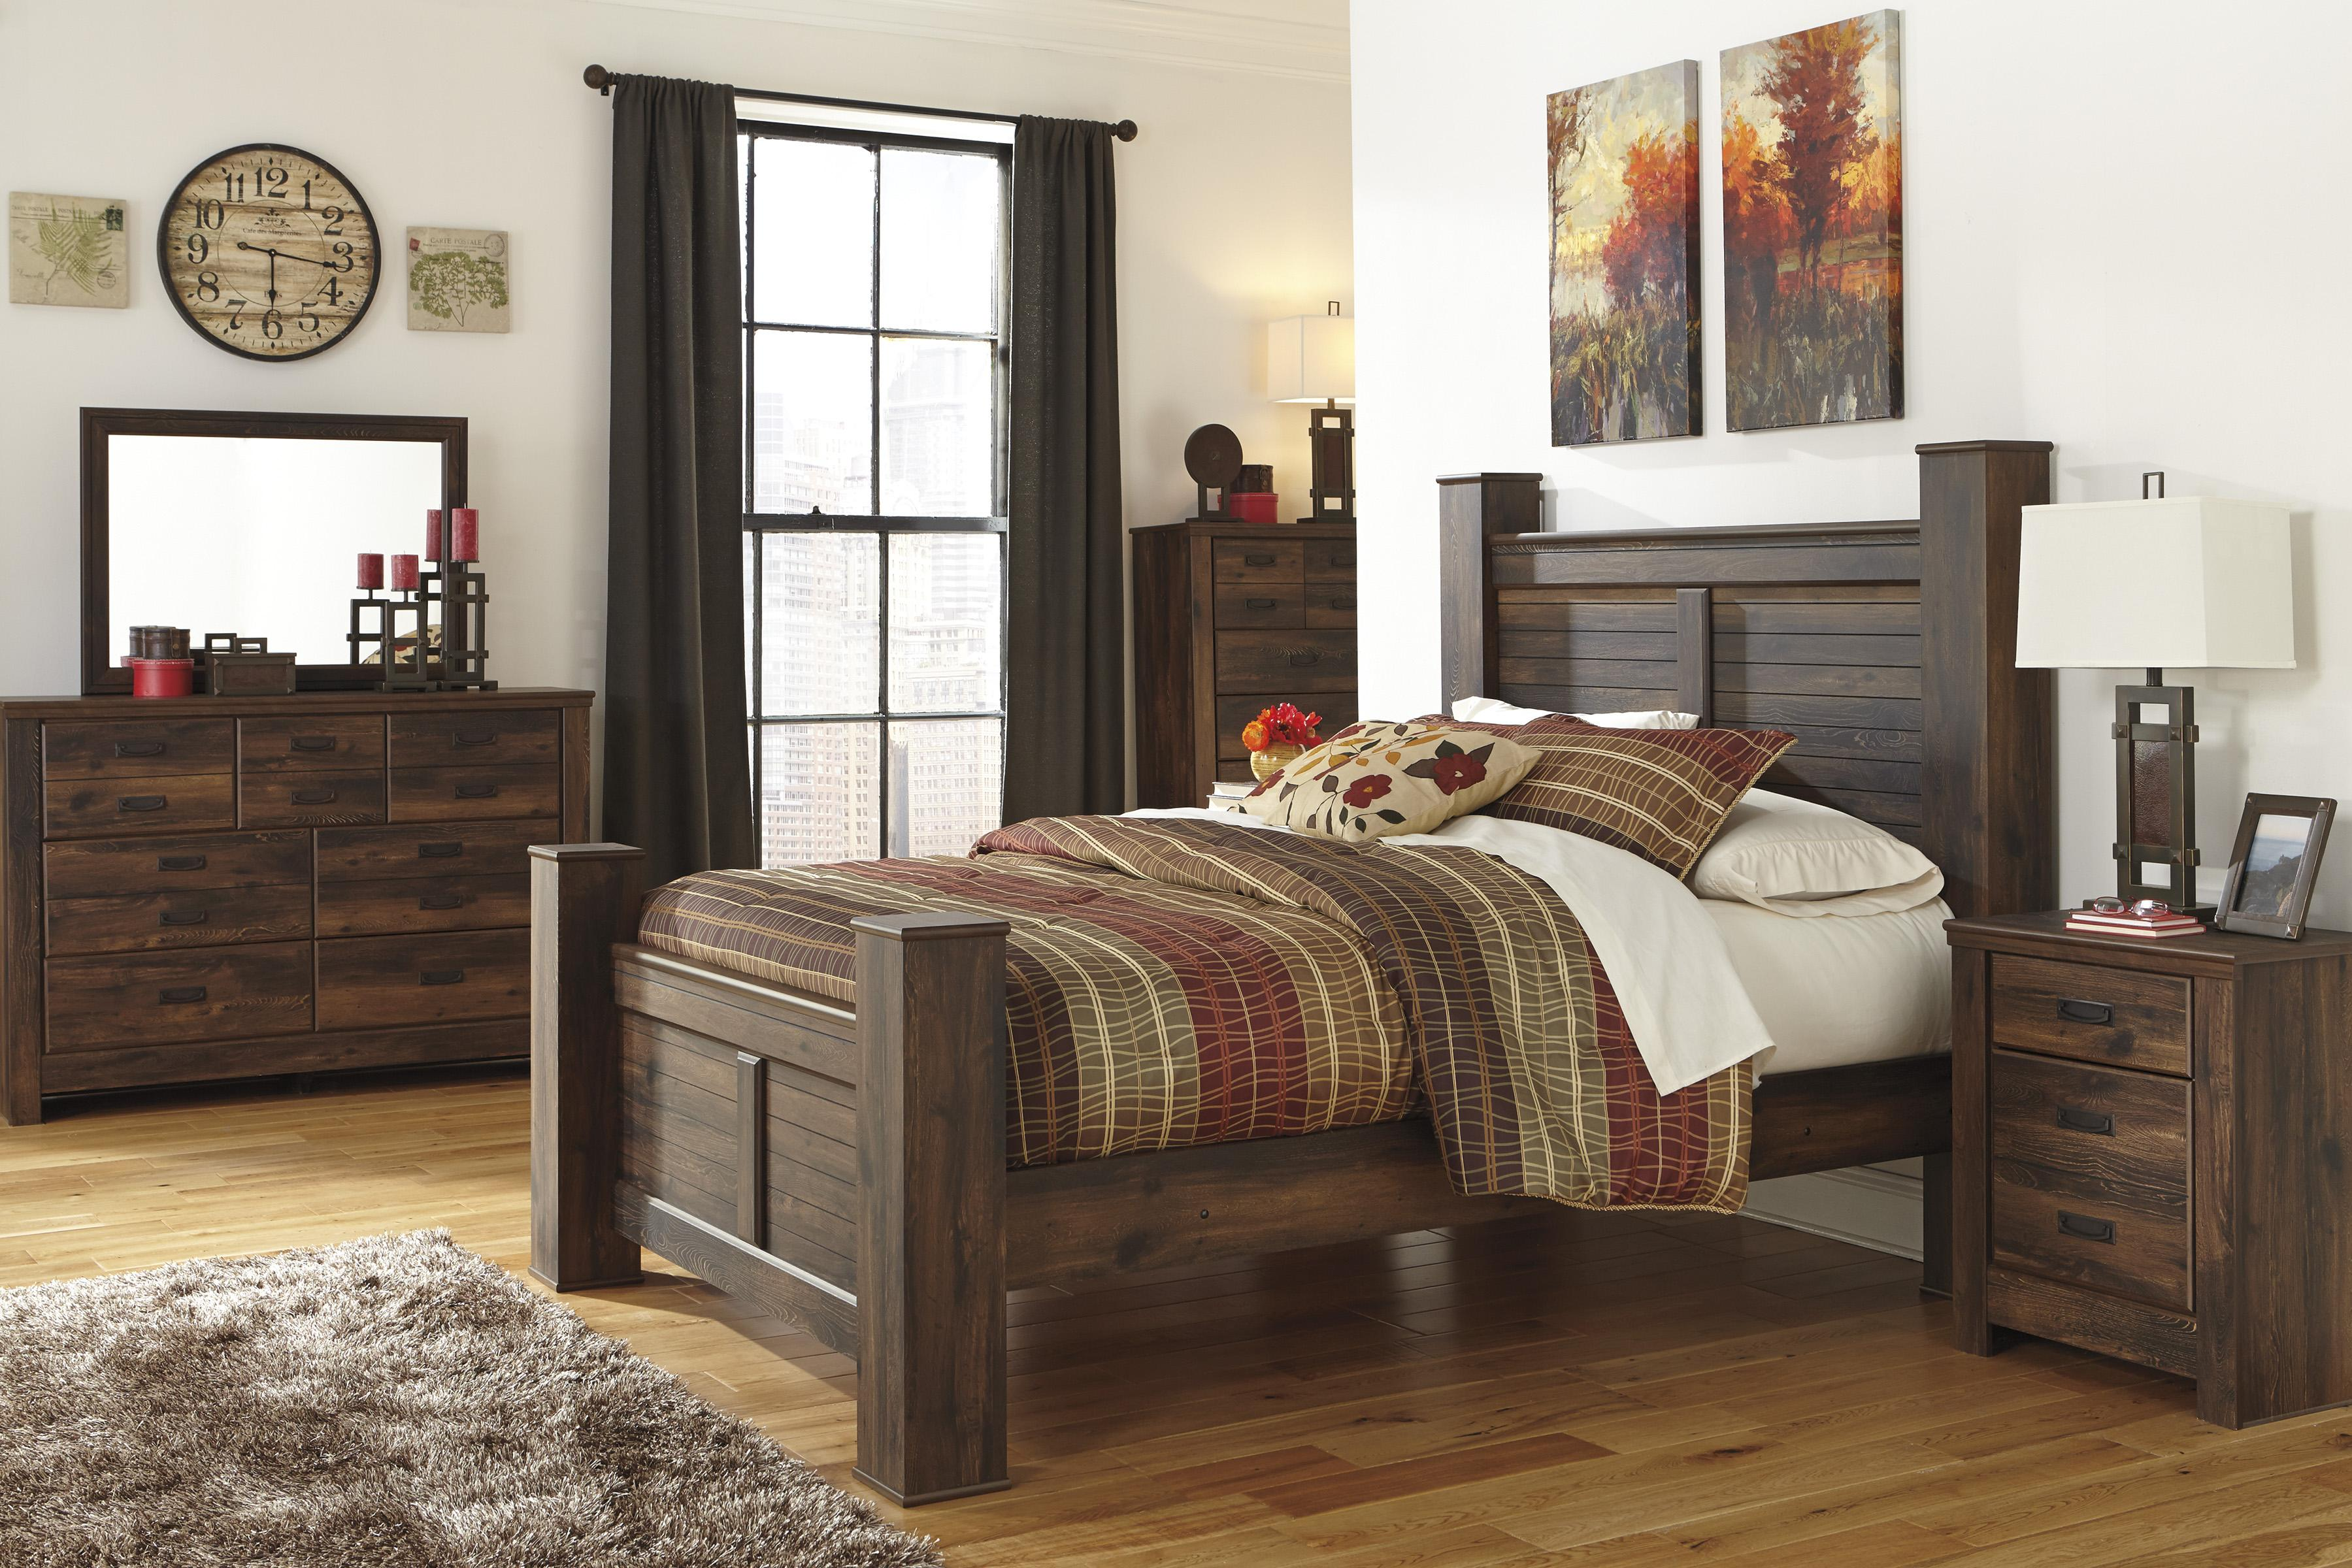 Signature Design By Ashley Quinden Rustic Queen Poster Bed Conlin 39 S Furniture Panel Beds